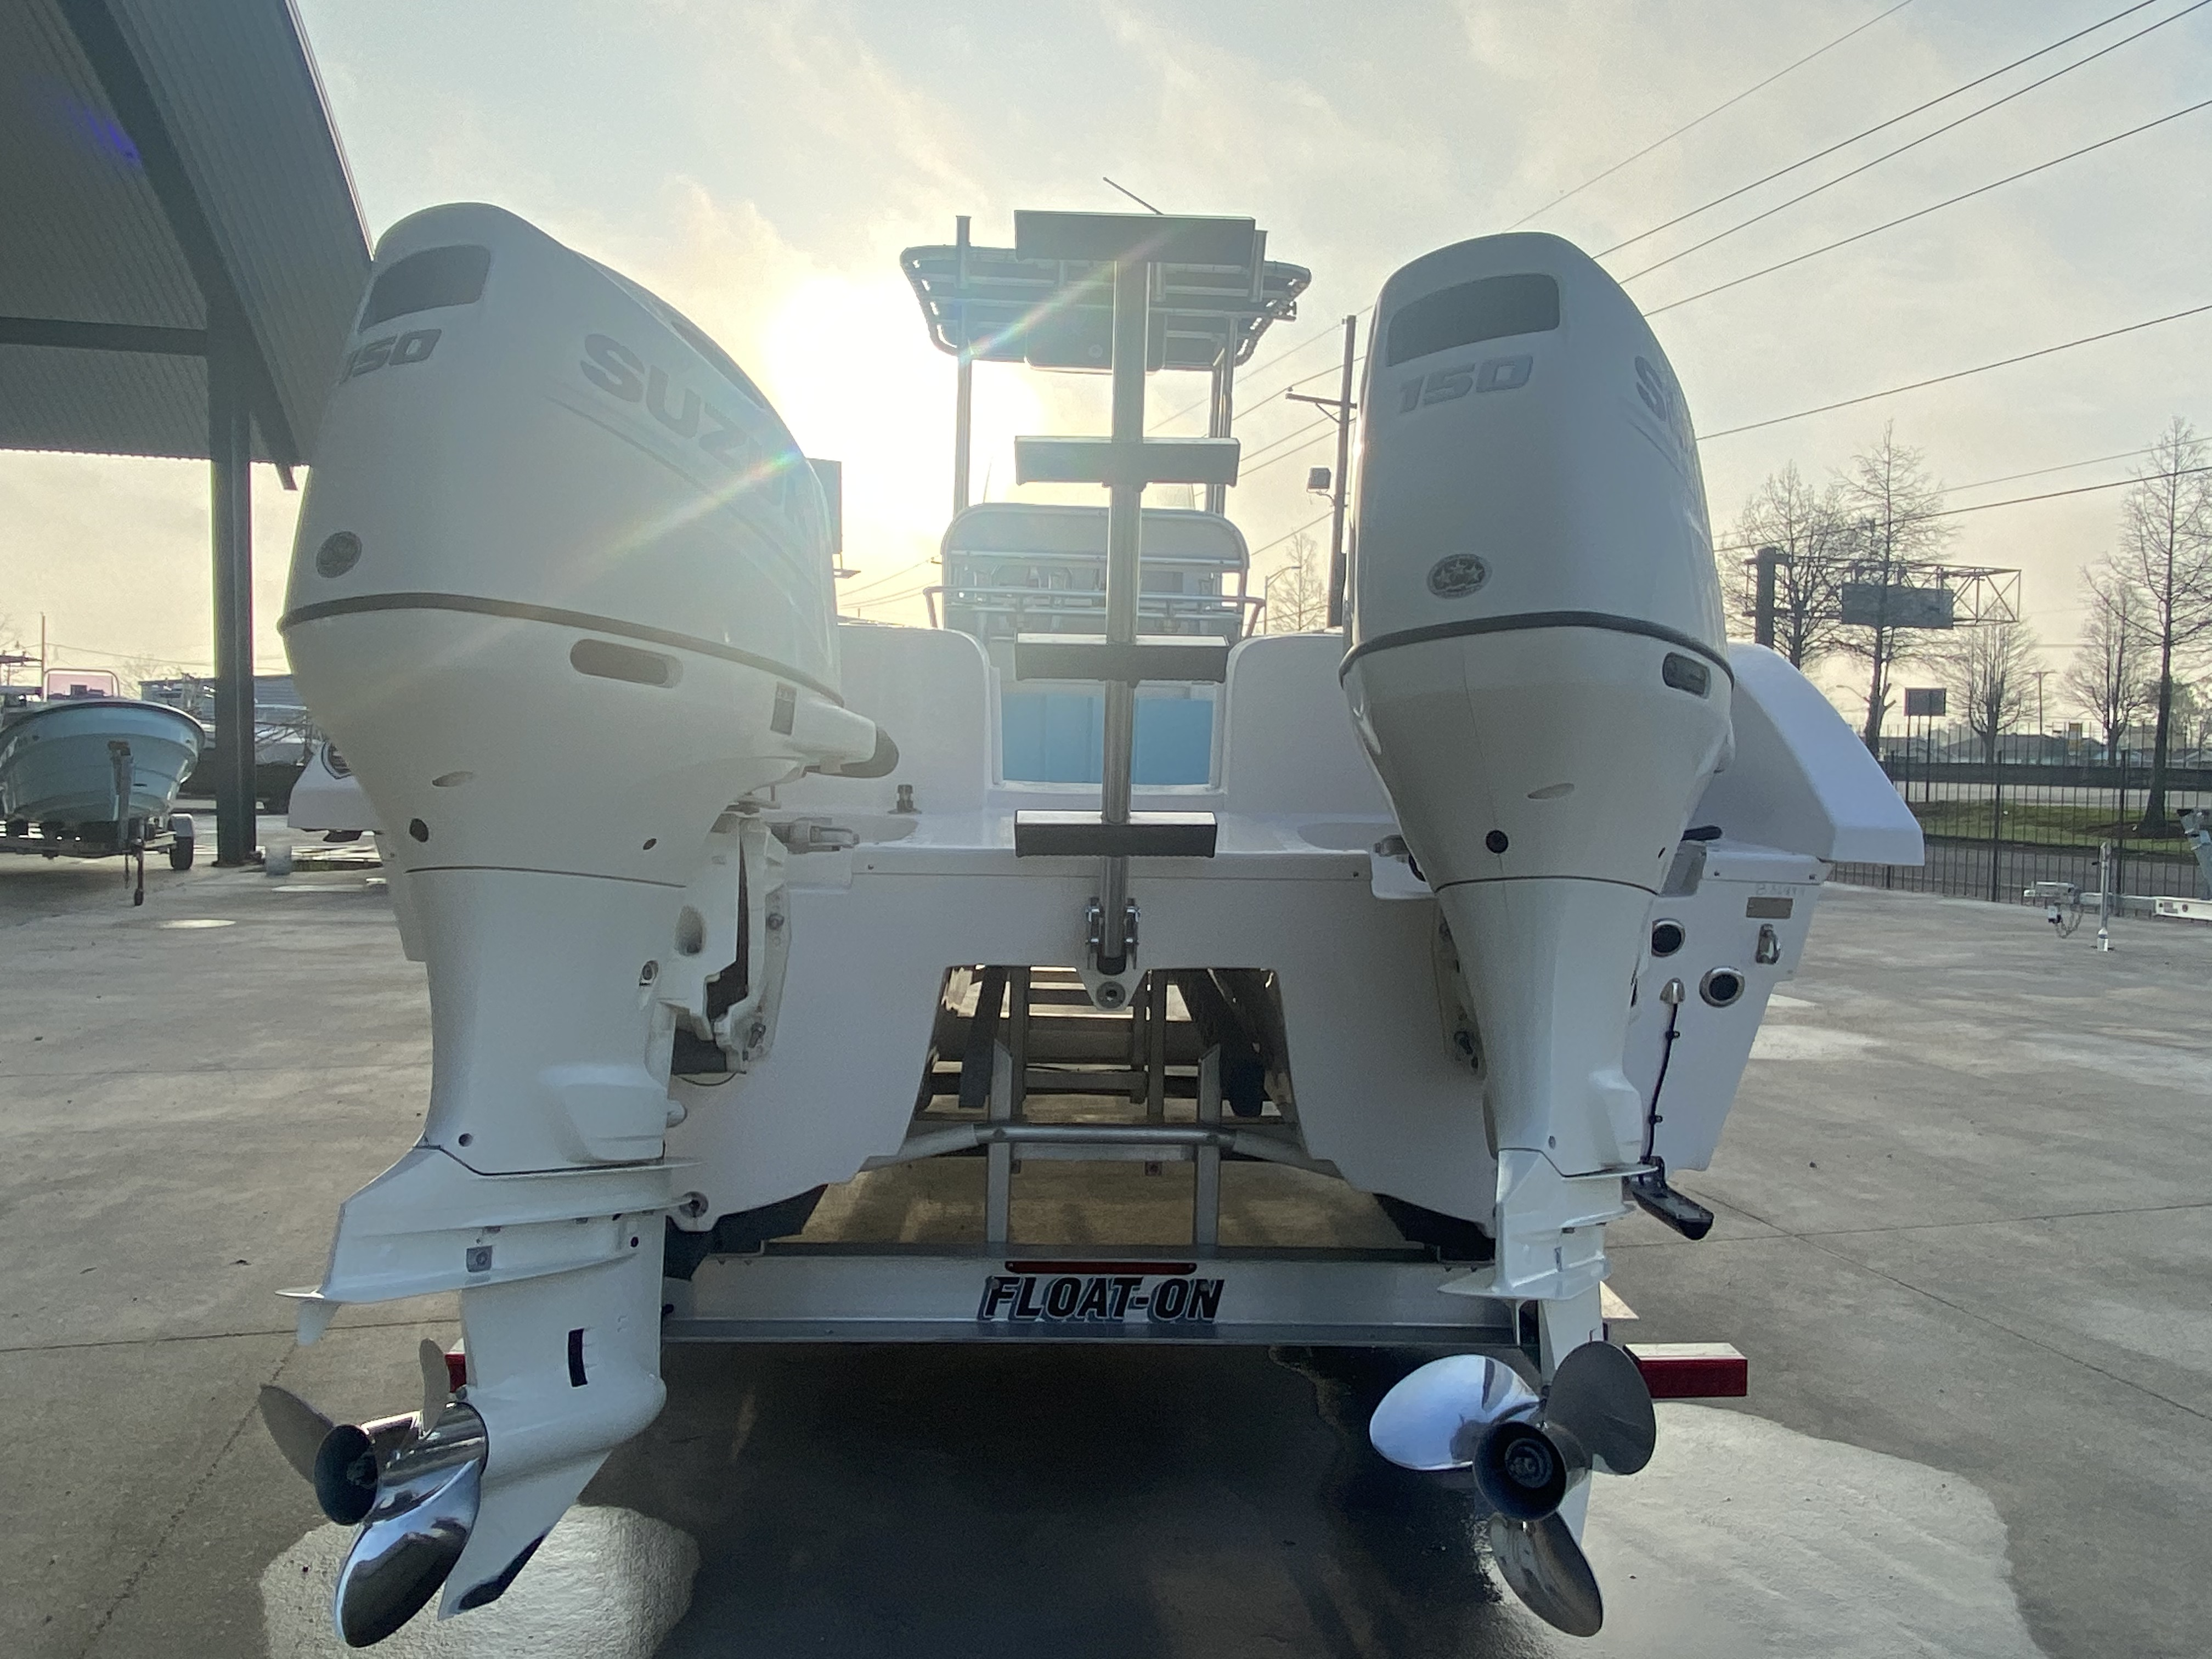 2020 Twin Vee boat for sale, model of the boat is 26 Pro & Image # 19 of 24